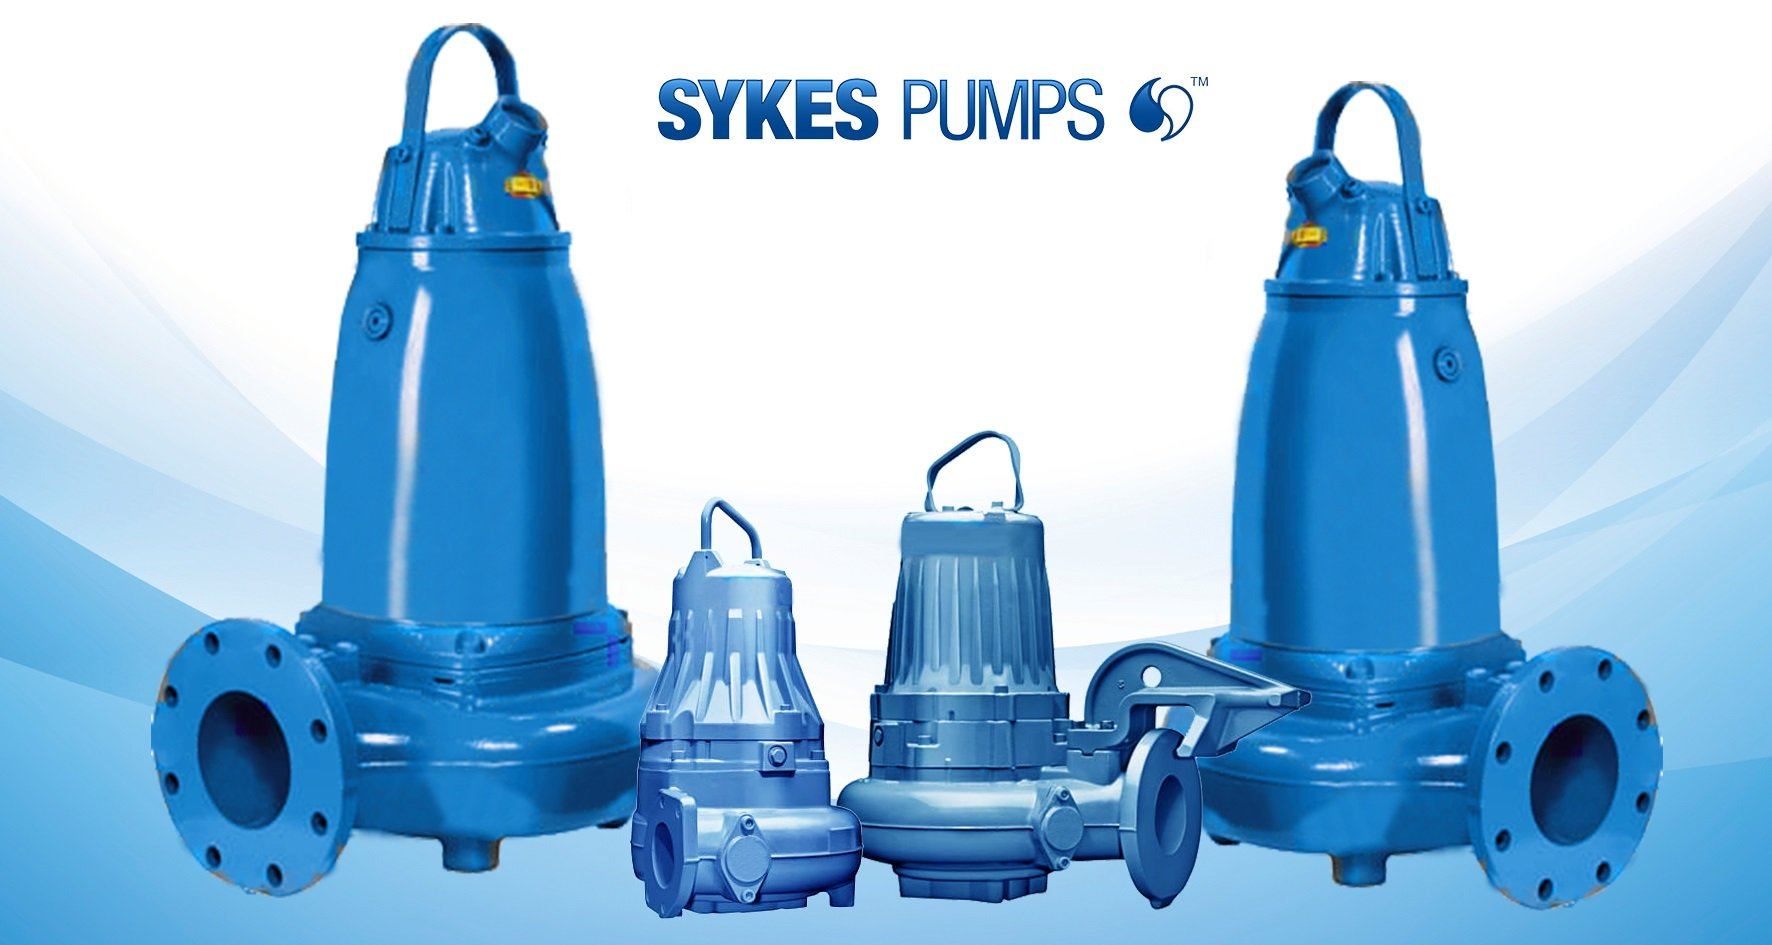 Sykes Pumps adds four new models to expansive electric submersible wastewater range